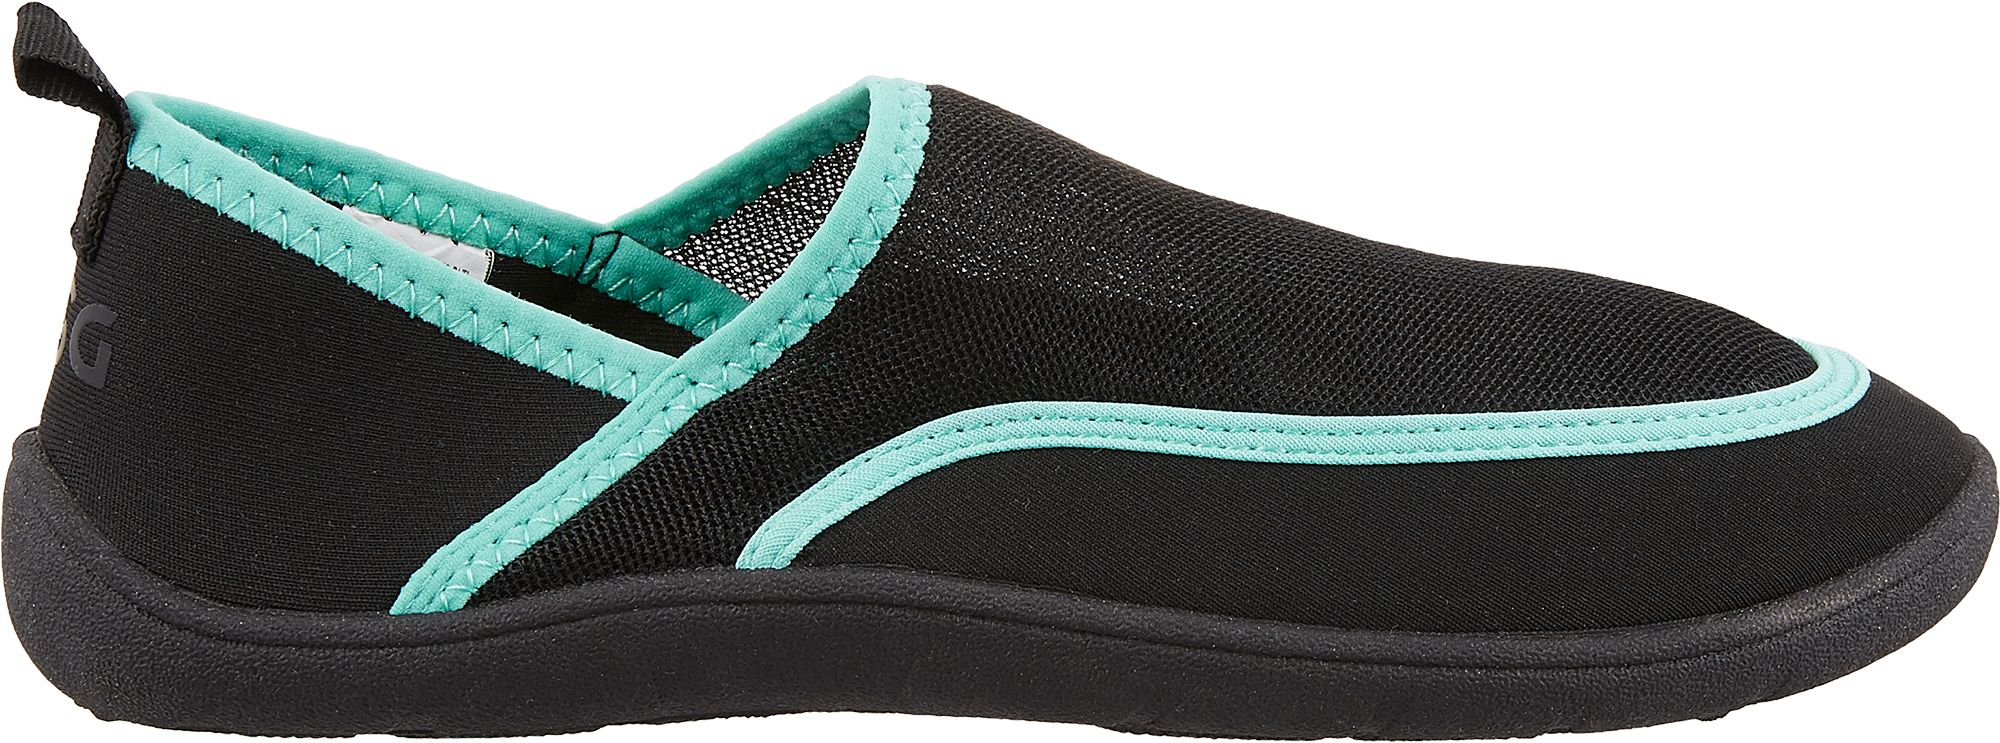 DSG Women's Water Shoes